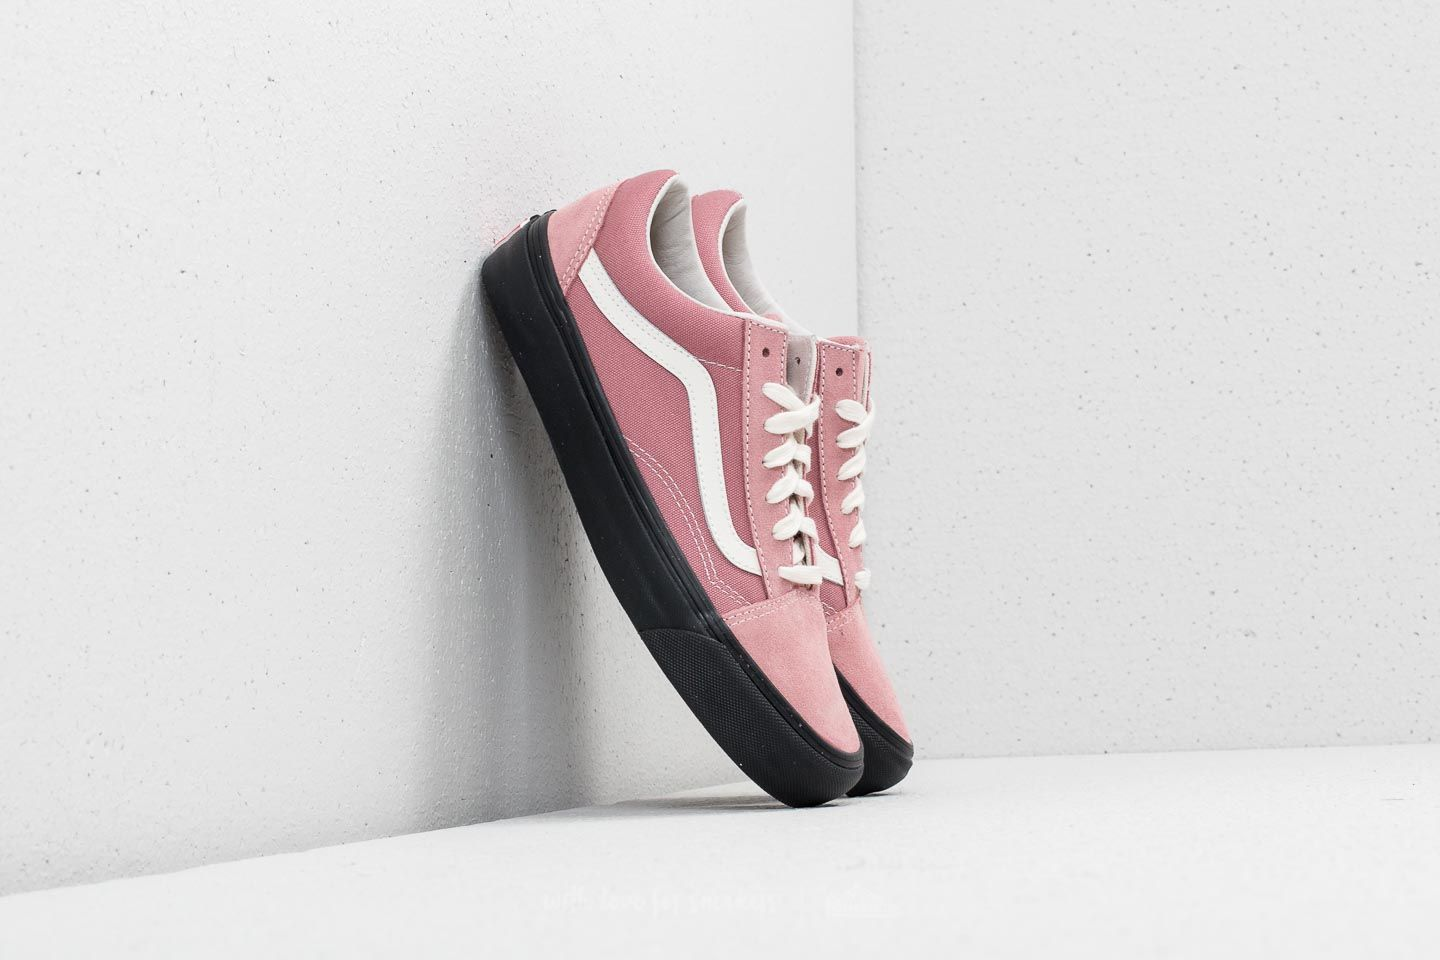 edaf6c0dbcf6 Vans OG Old Skool LX (Suede Canvas) Ash Rose  Black